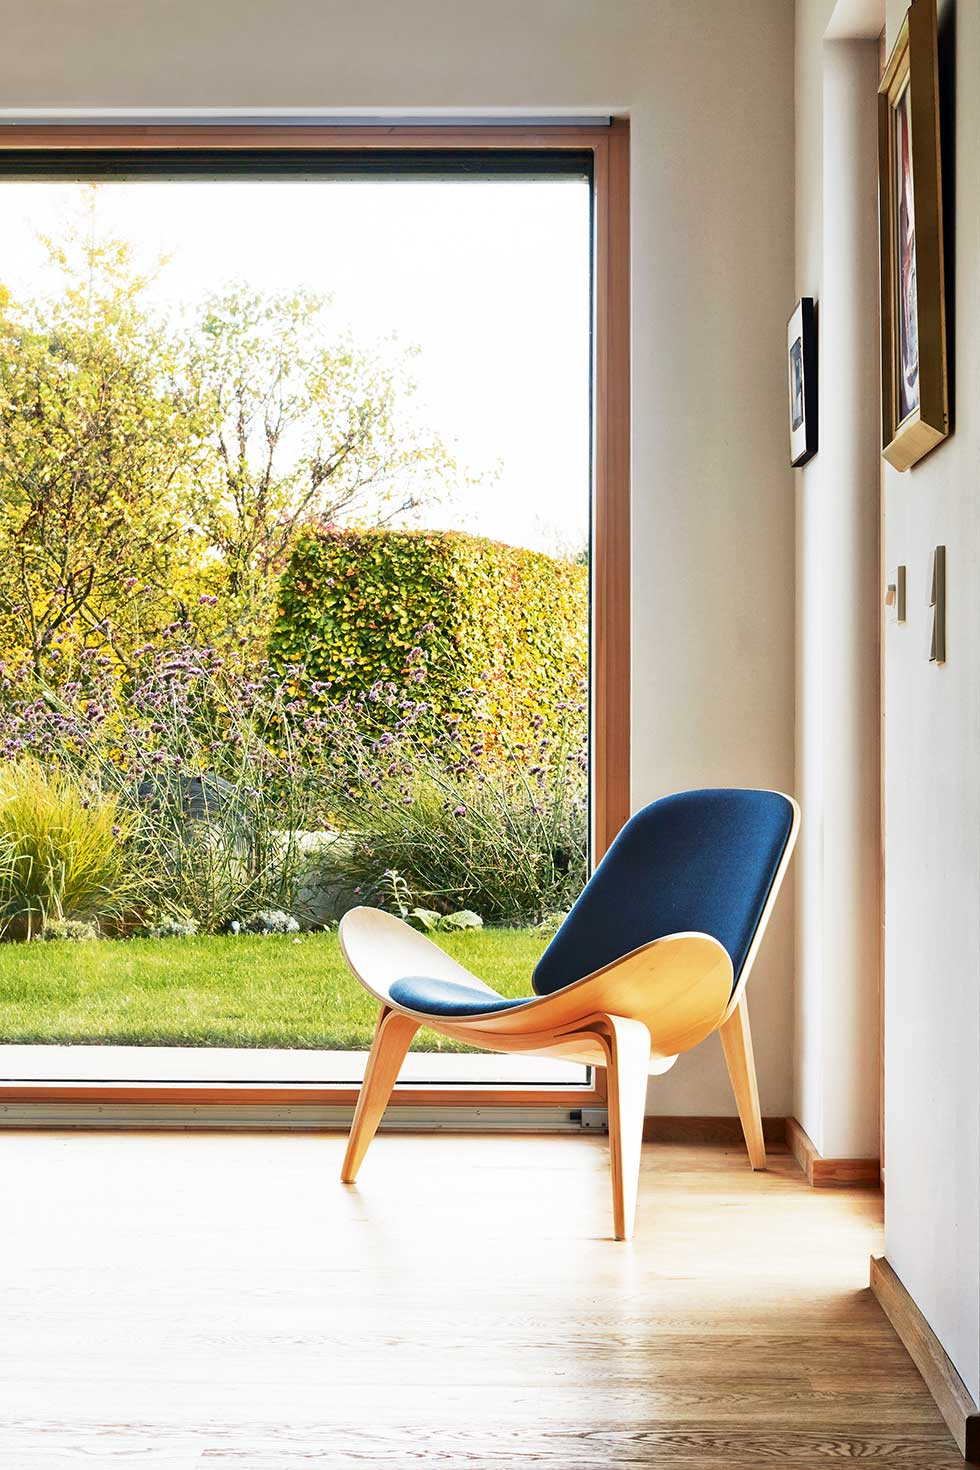 Baufritz package build glazing and retro chair